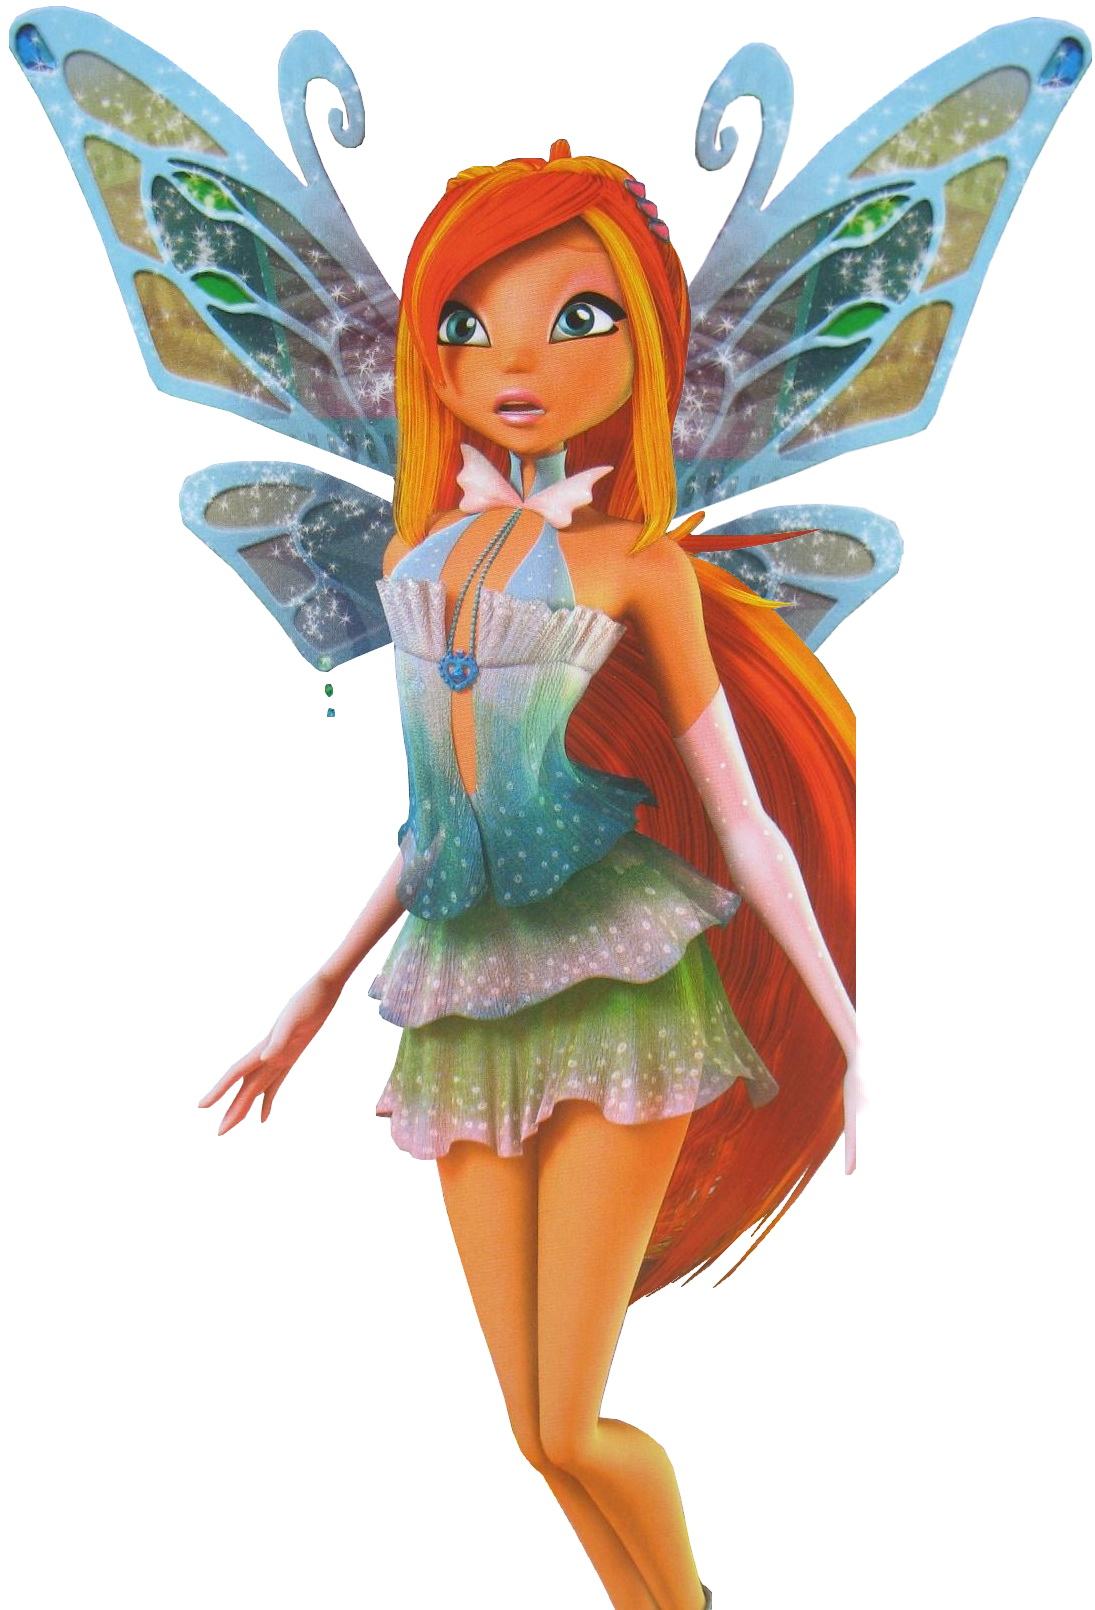 Для детей winx club bloom 010 1095x1610px 342kb